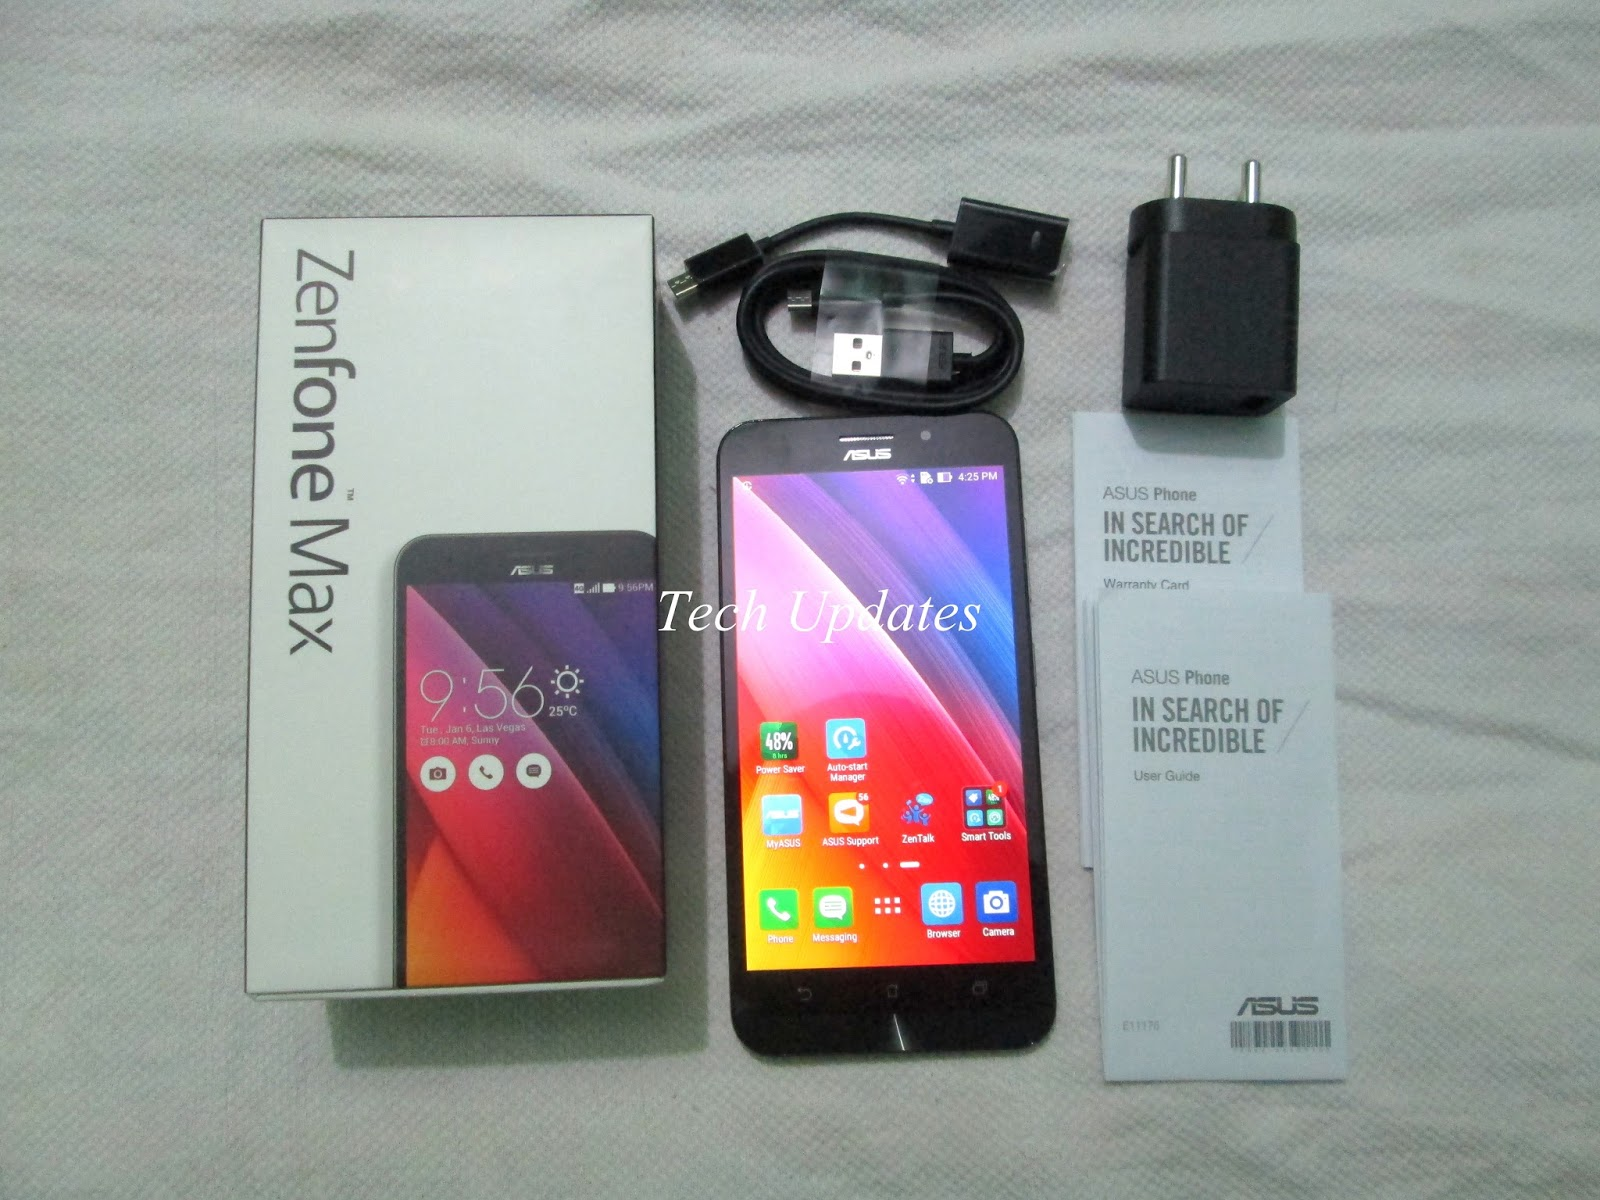 Asus Usb Cable Wiring Diagram Zenfone Max Photo Gallery Tech Updates 2 Pin Charging Adapter Otg Cabe User Manual